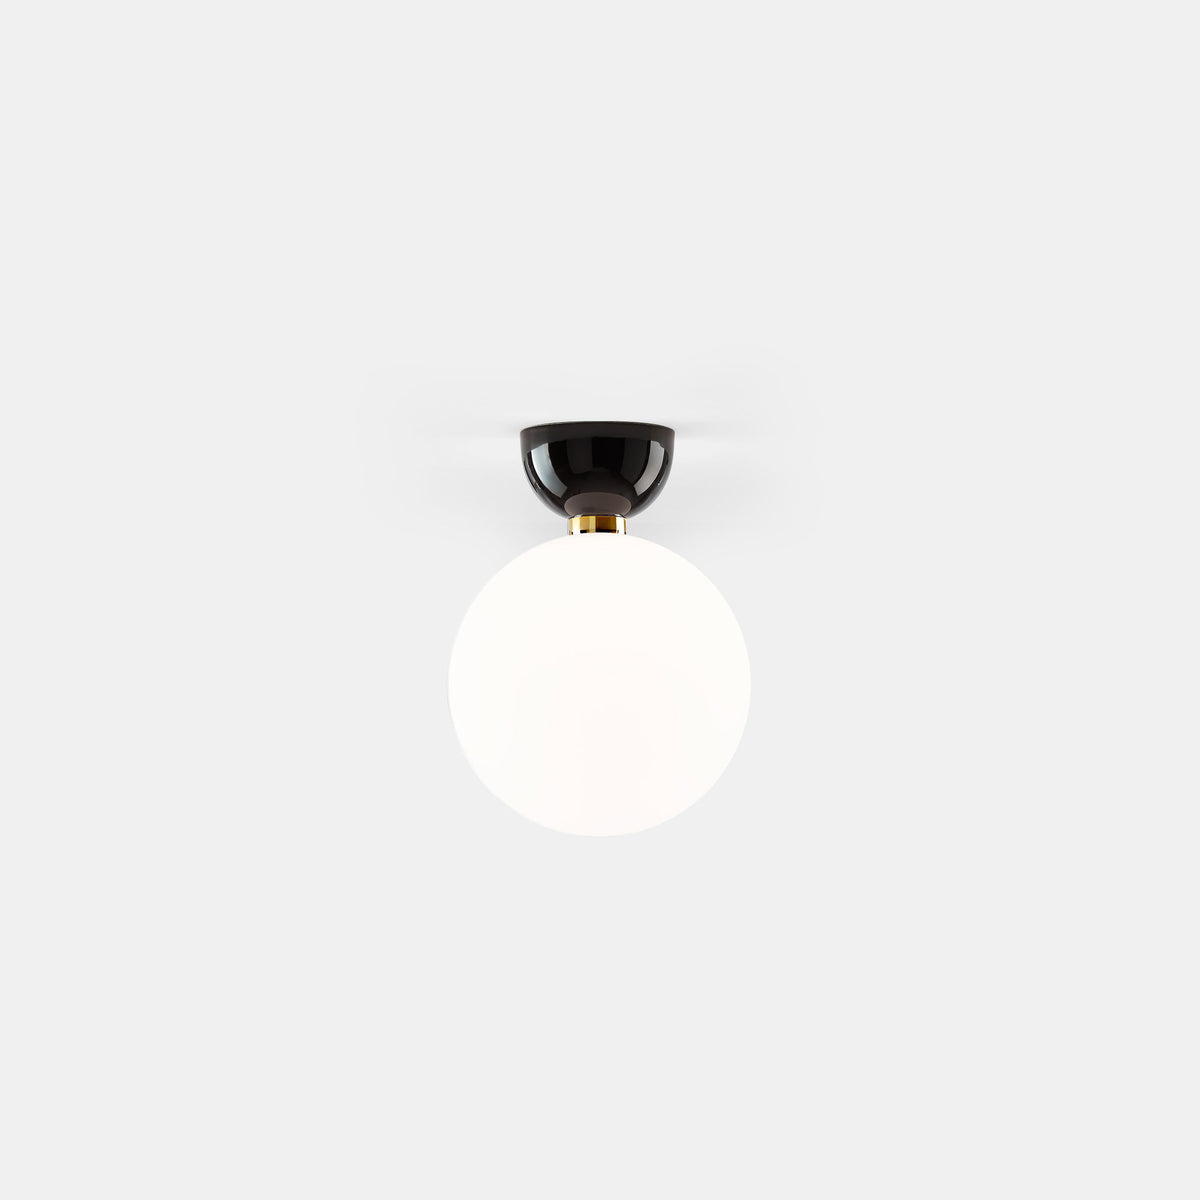 Aballs AII Wall Lamp/Ceiling Light - Black - Monologue London